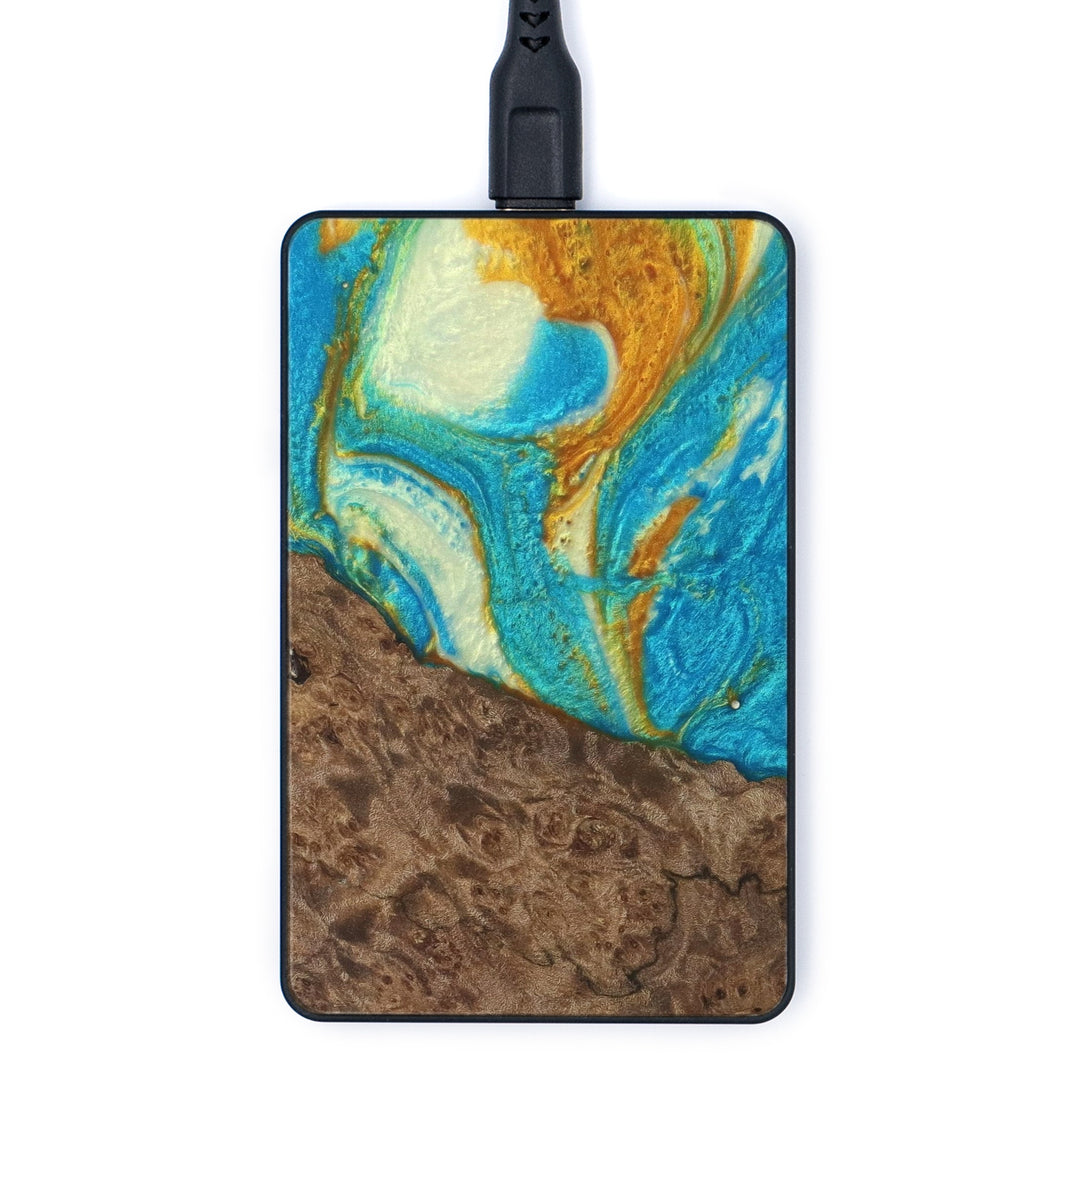 Thin Wireless Charger - Shashank (Teal & Gold, 335337)